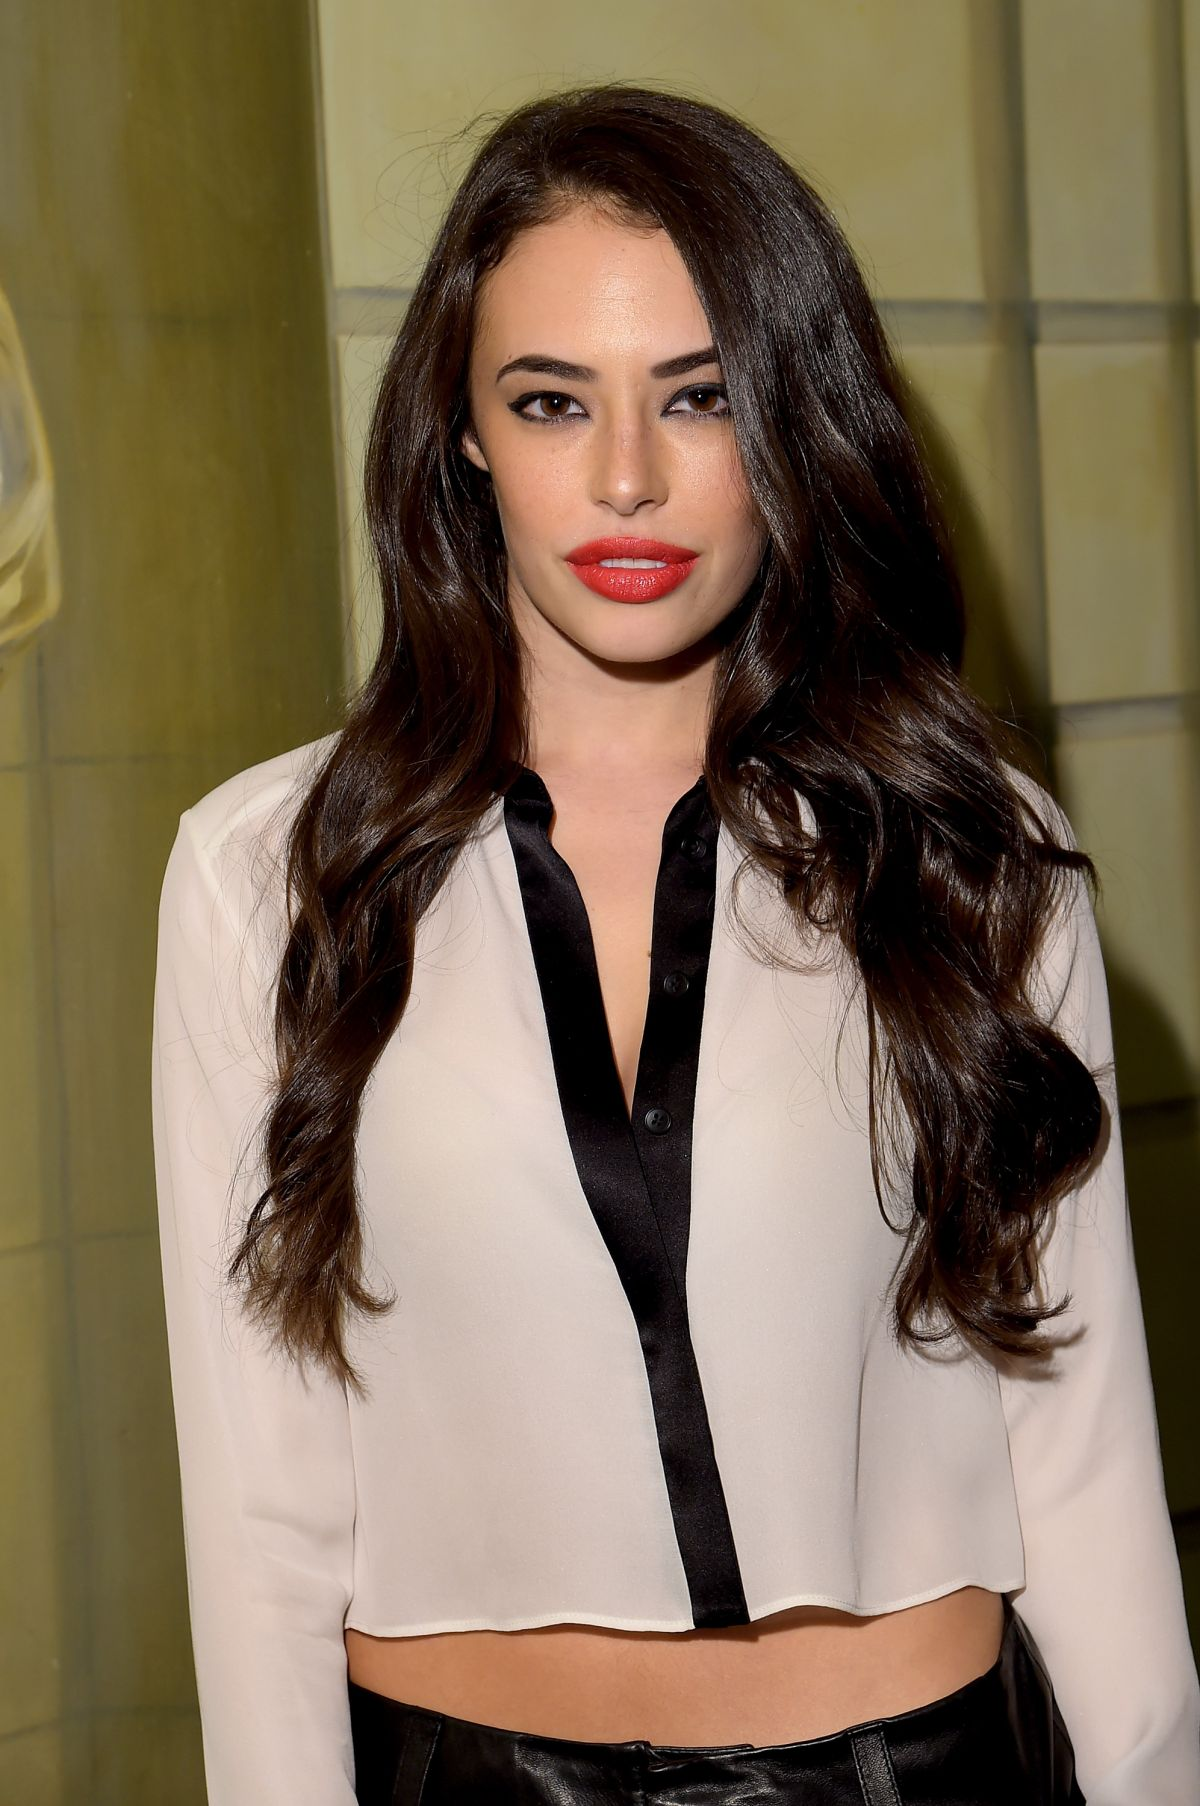 CHLOE BRIDGES at Alice+Olivia by Stacey Bendet Fashion Show in New York